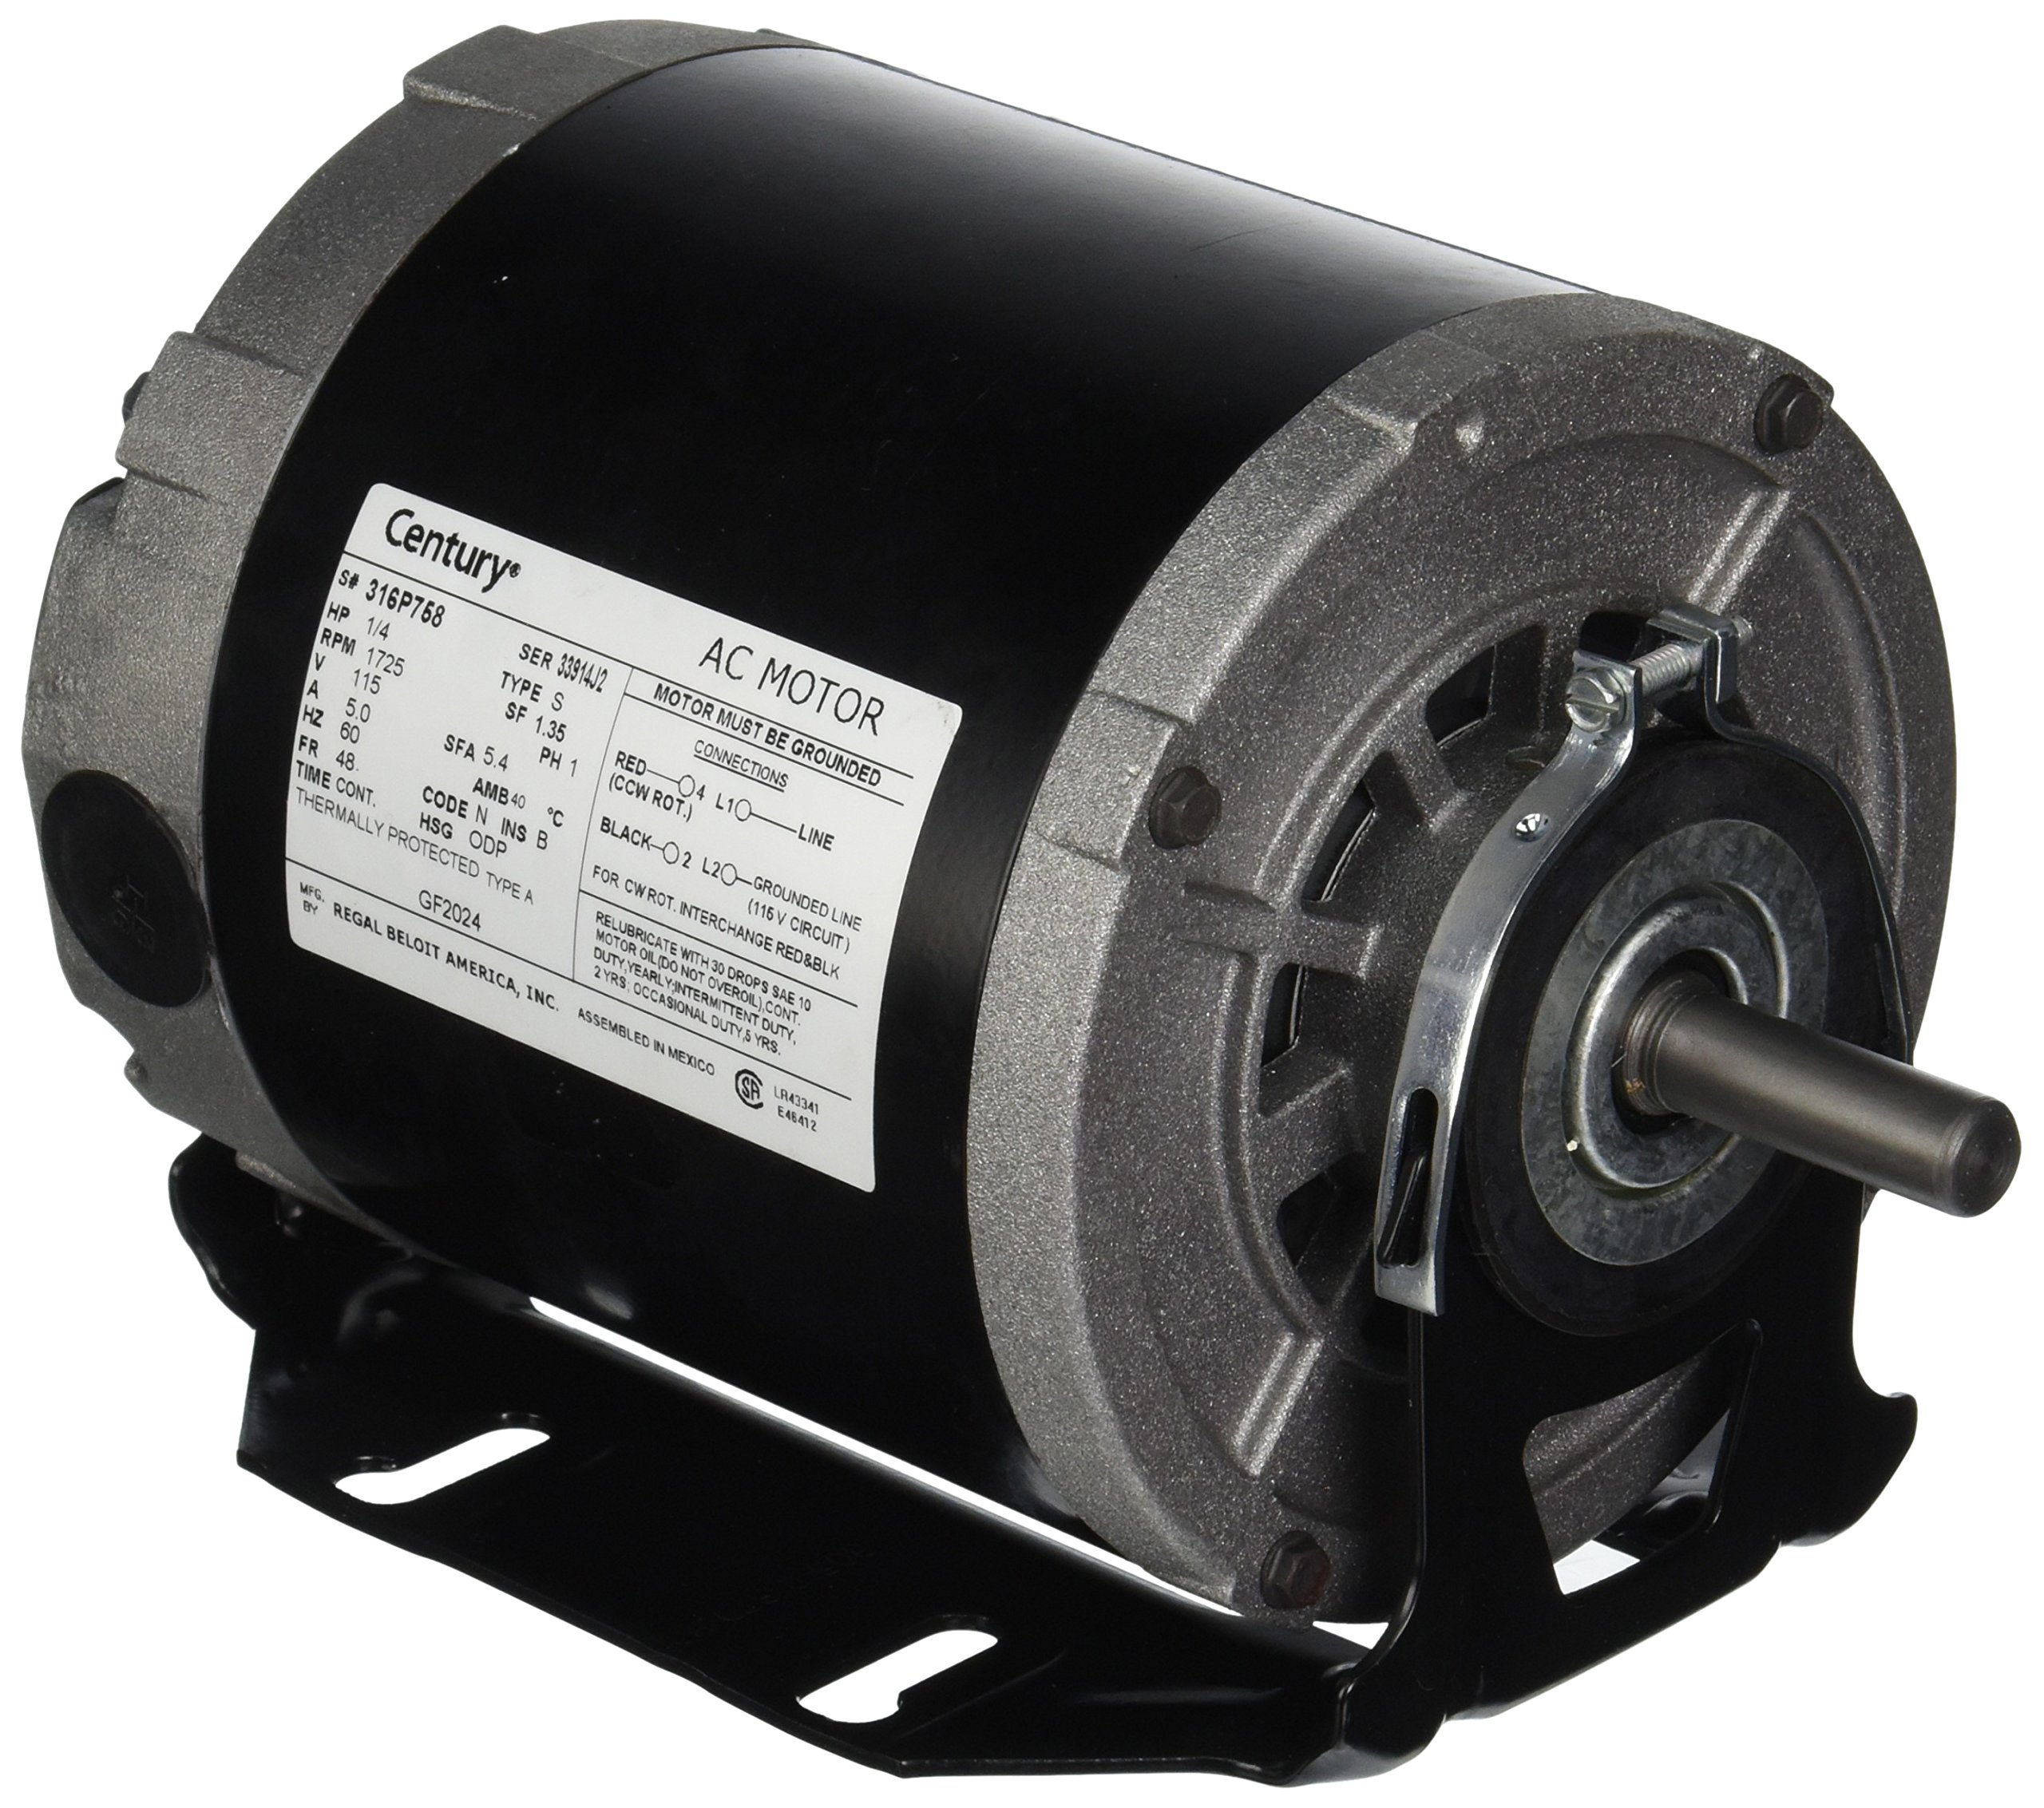 A.O. Smith GF2024 1/4 hp, 1725 RPM, 115 volts, 48/56 Frame, ODP, Sleeve Bearing Belt Drive Blower Motor